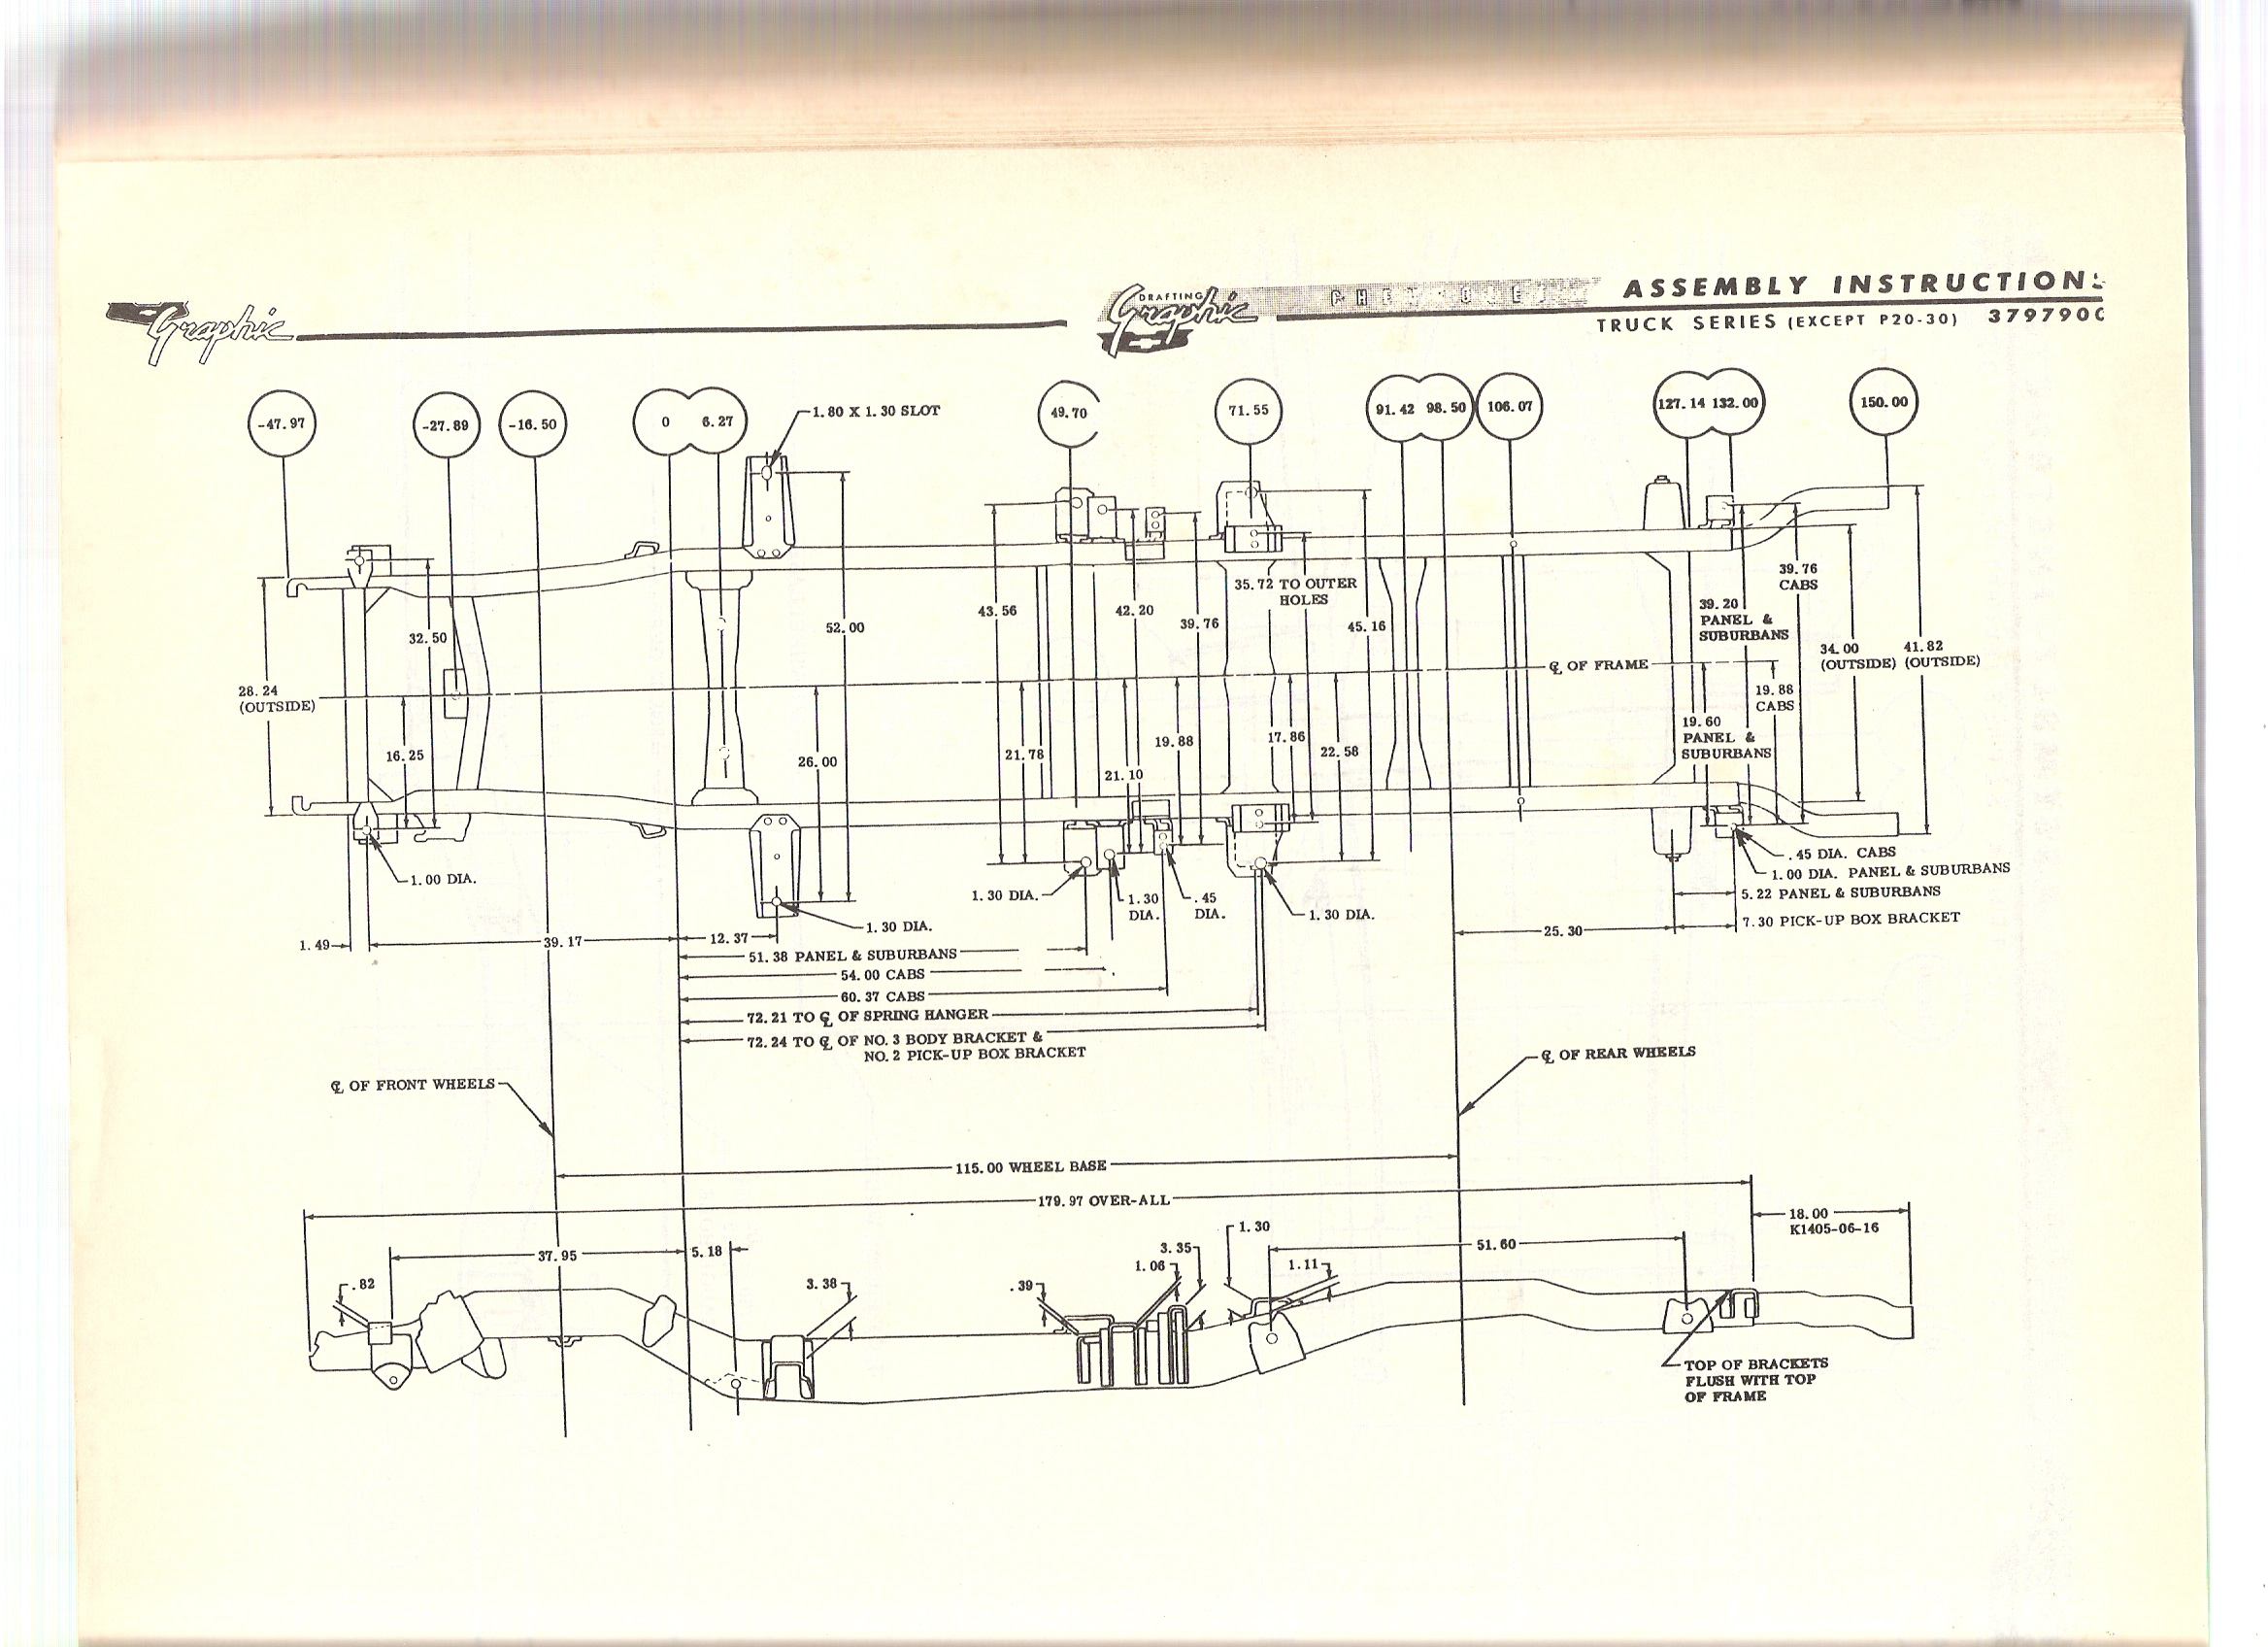 1989 Gmc K1500 Wiring Diagram Wire Schematic 1988 Sierra 71 Chevy Nova Tail Light